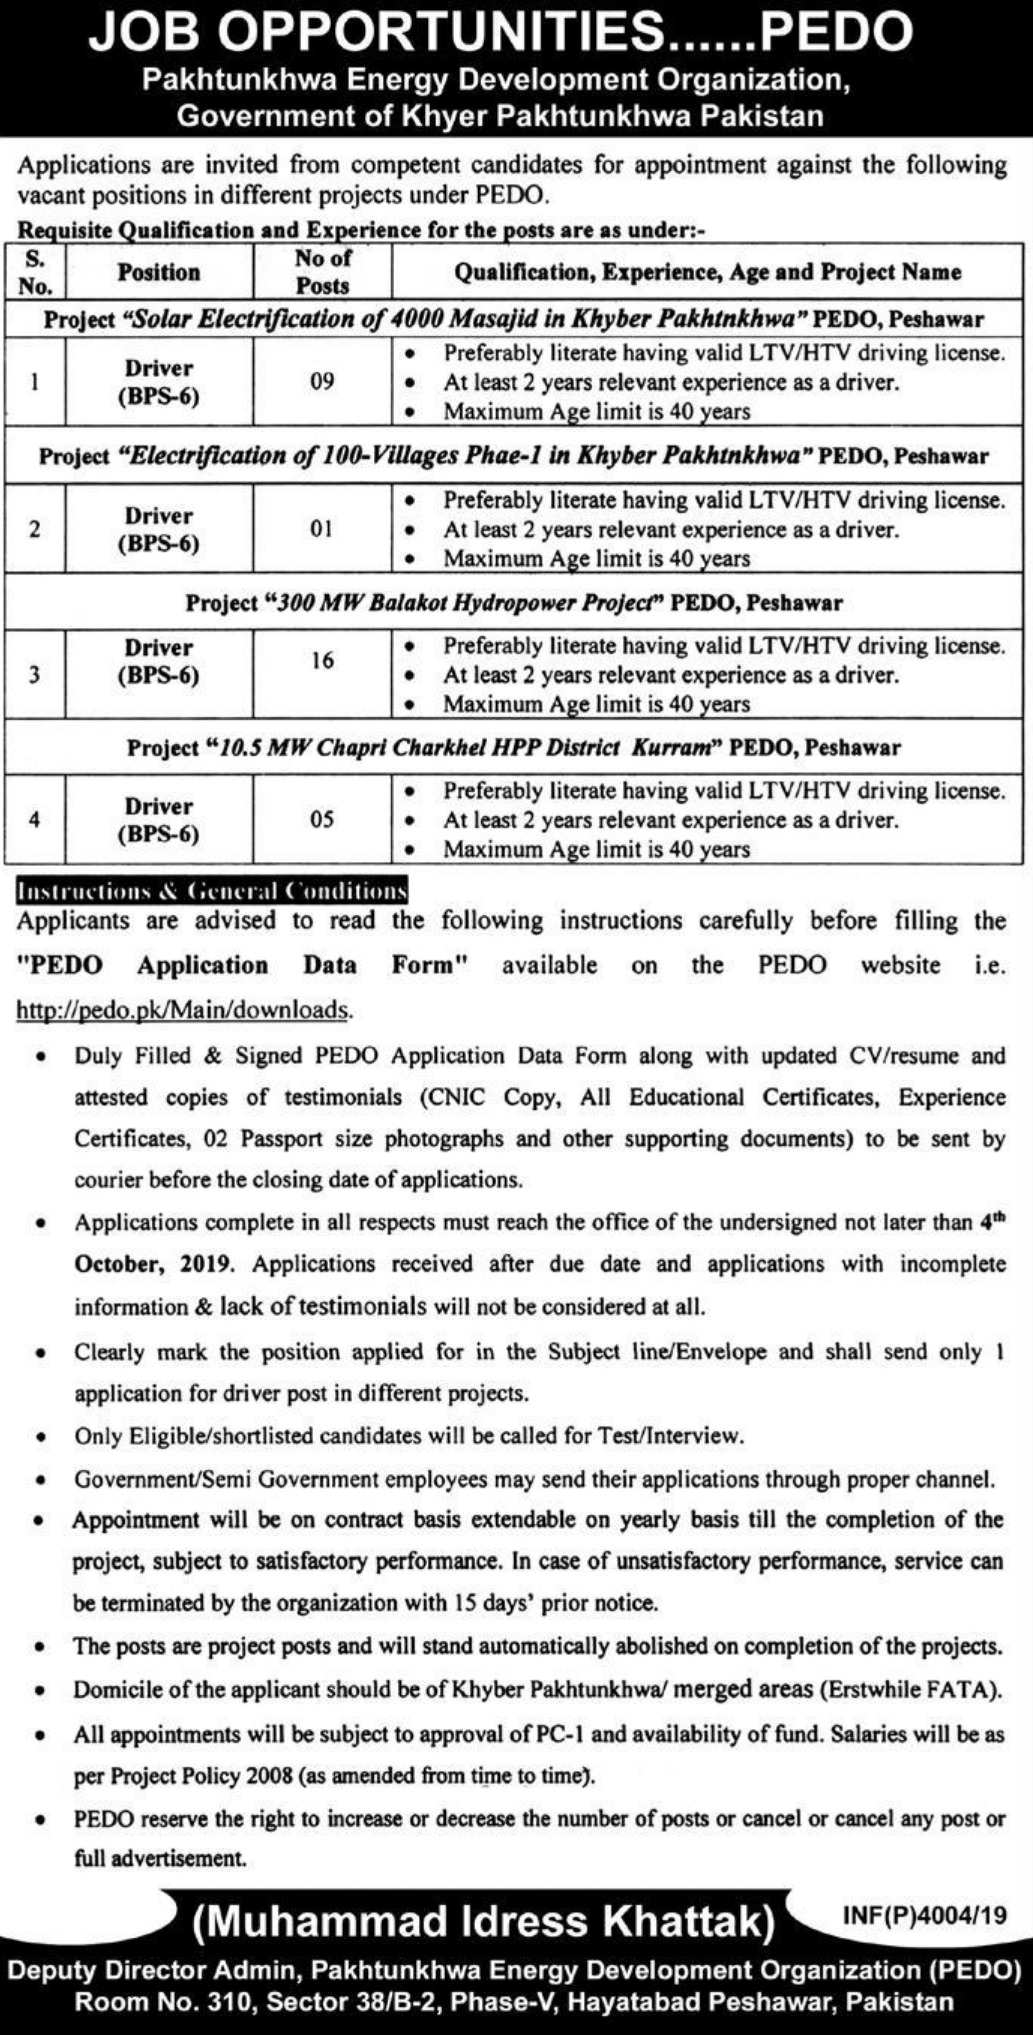 Pakhtunkhwa Energy Development Organization PEDO Peshawar Jobs 2019 KPK